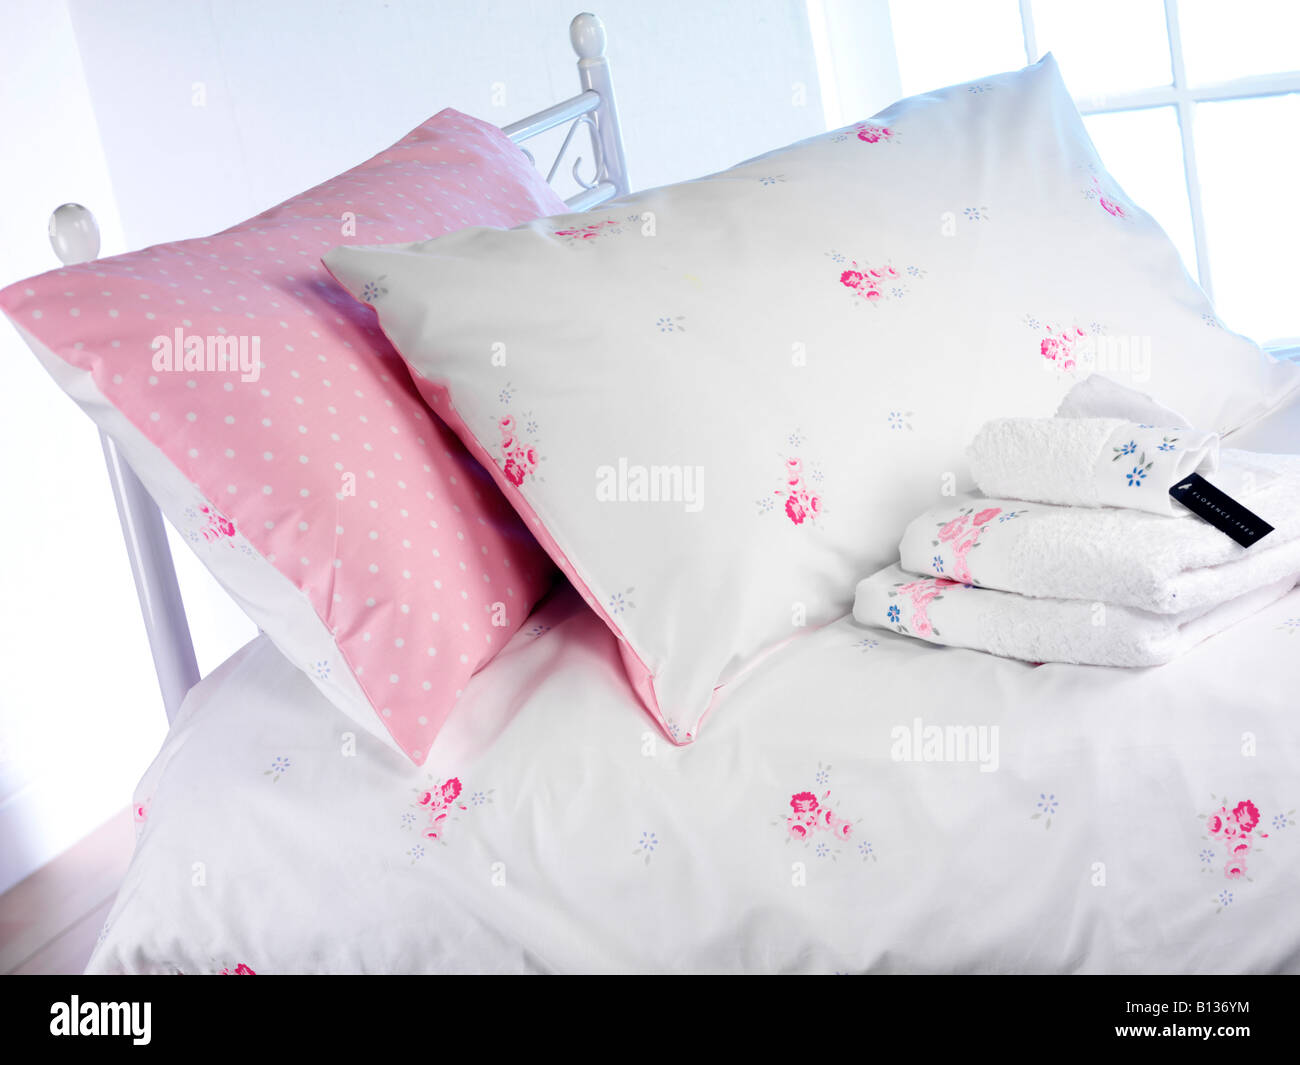 PINK AND WHITE BEDLINEN ON BED - Stock Image